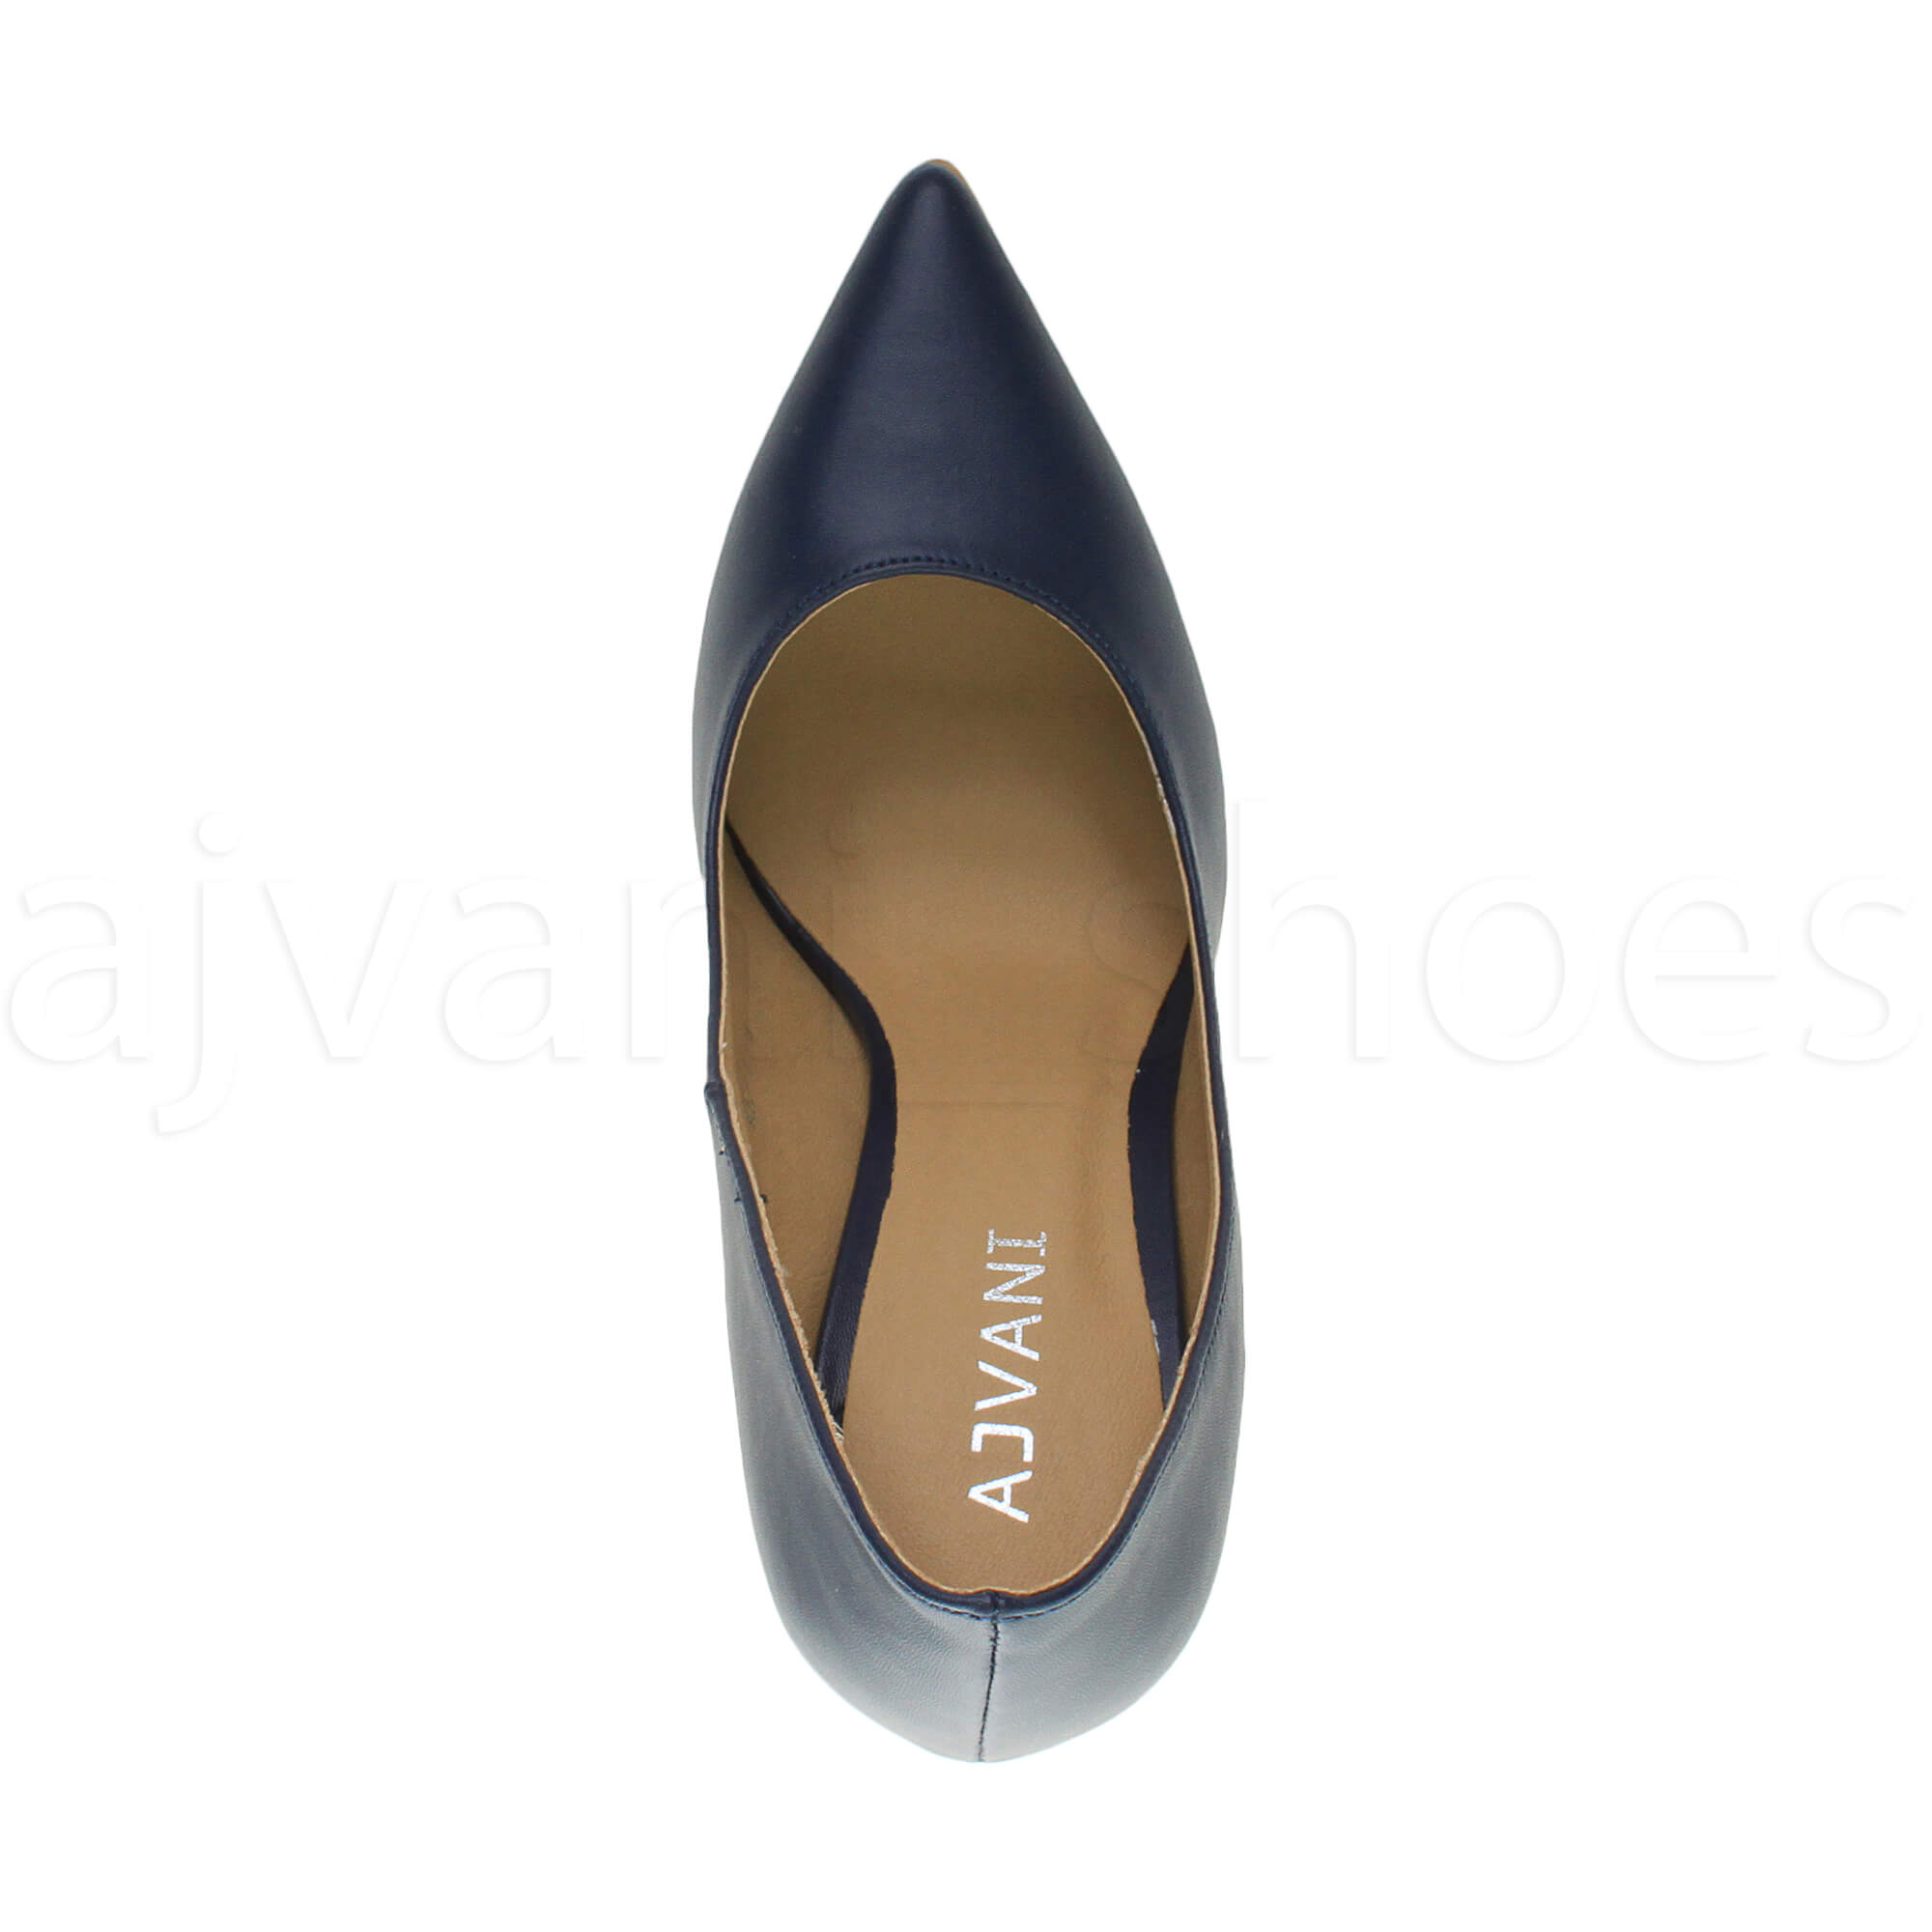 WOMENS-LADIES-HIGH-HEEL-POINTED-CONTRAST-COURT-SMART-PARTY-WORK-SHOES-PUMPS-SIZE thumbnail 94